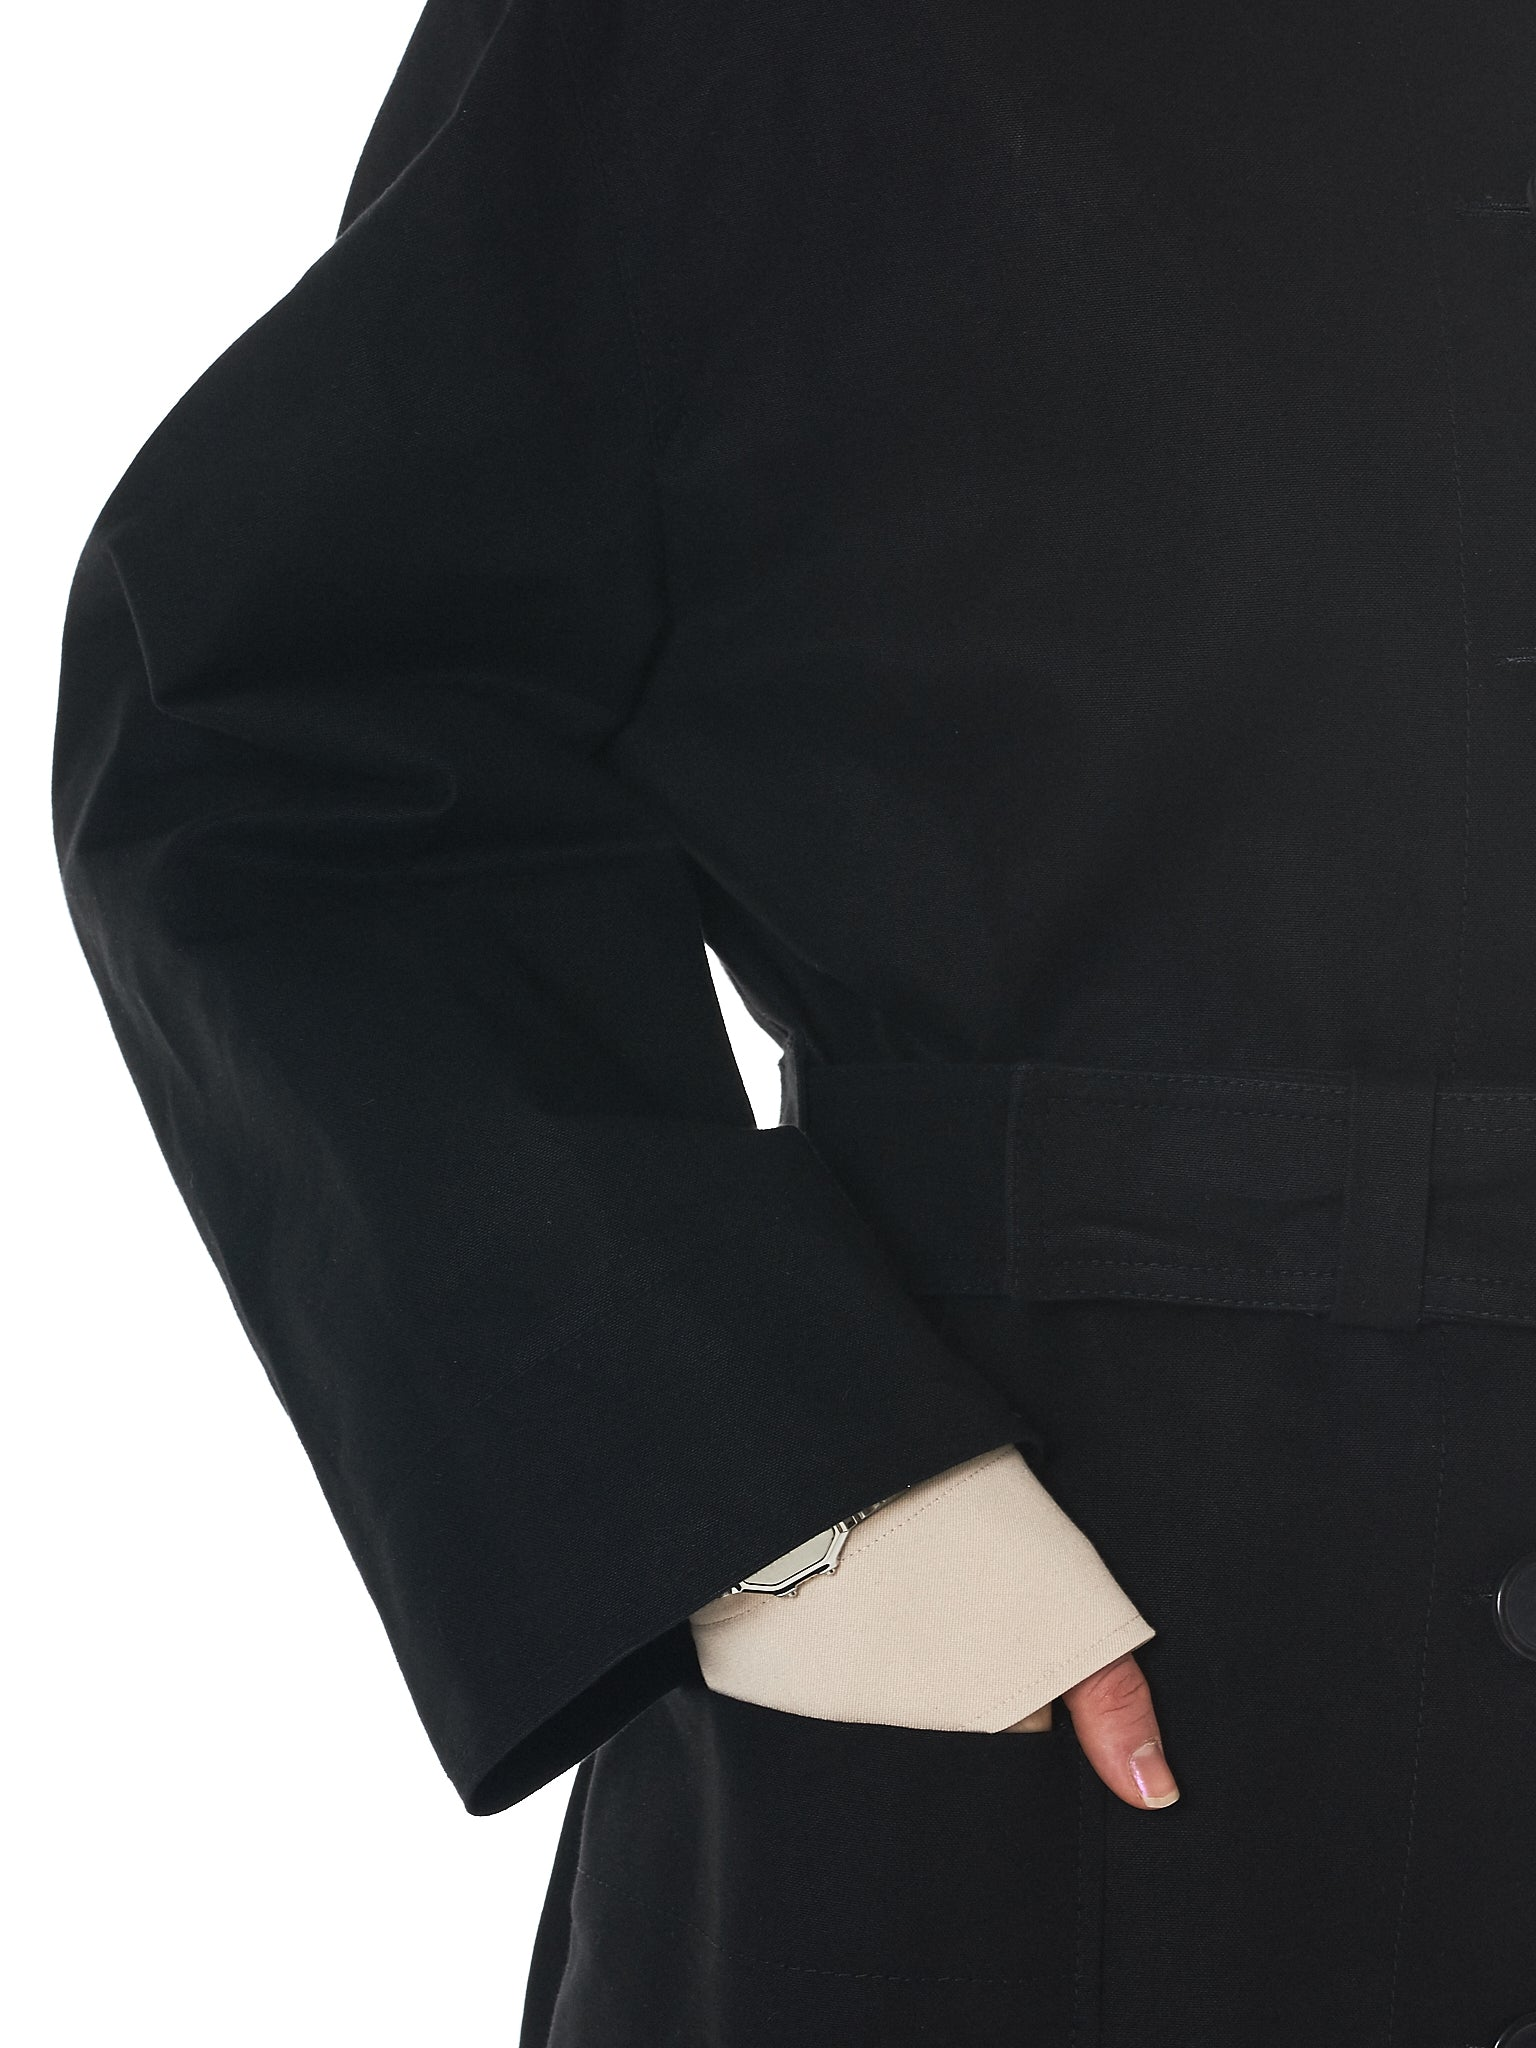 Kwaidan Oversized Coat - Hlorenzo Detail 3